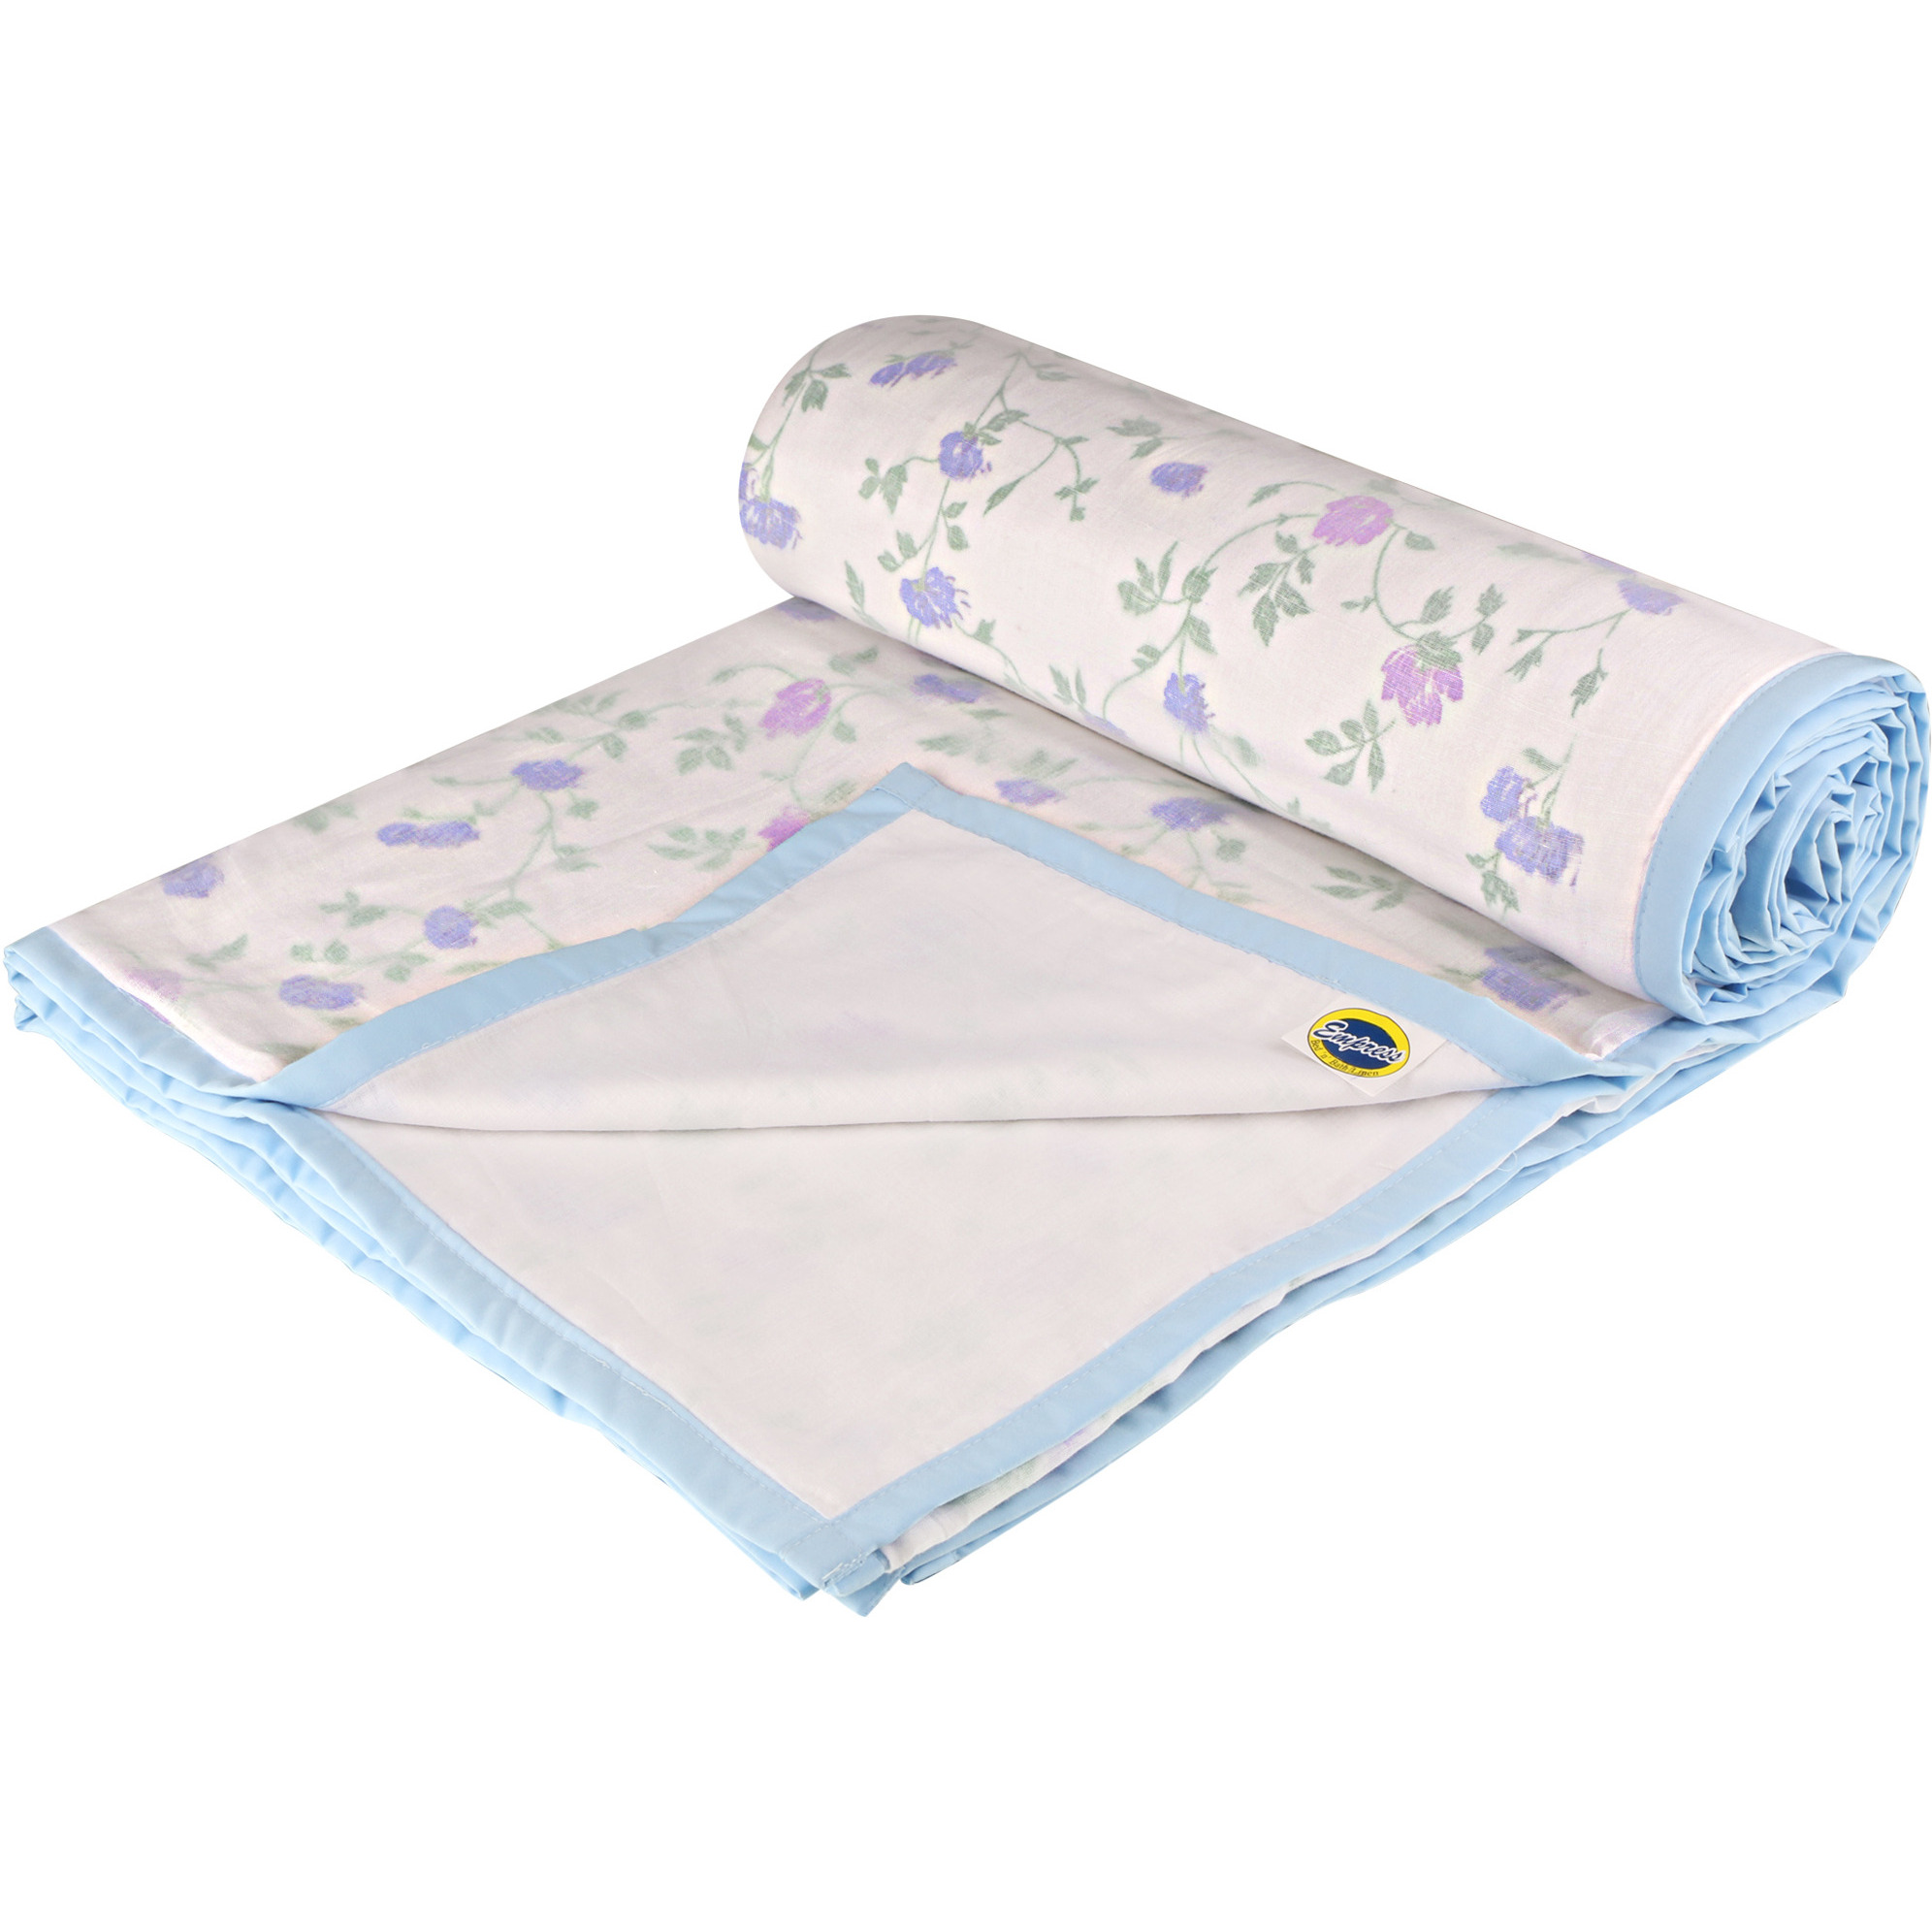 Home Furnishing Bedding Comfortable Purple Floral Cotton Single Dohar bedspread